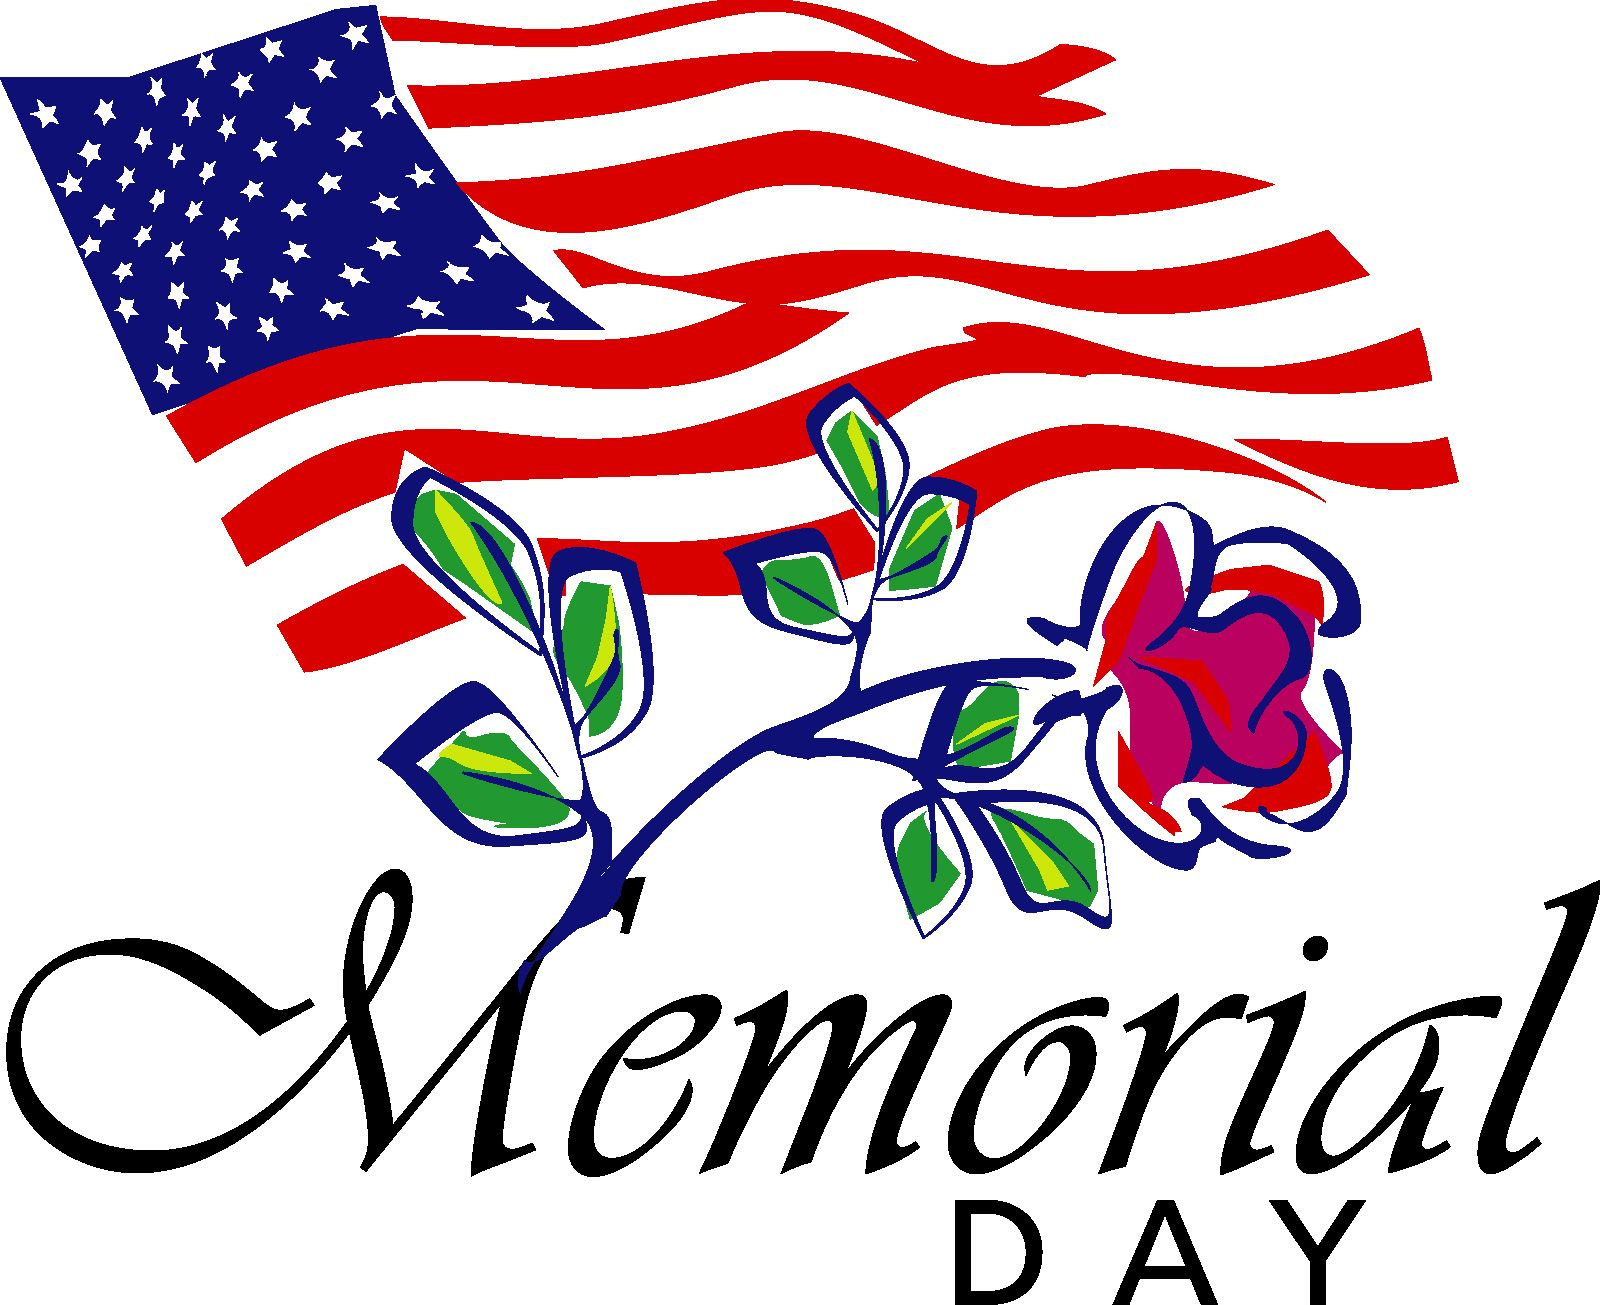 Day clipart memorial day. Clip art free large